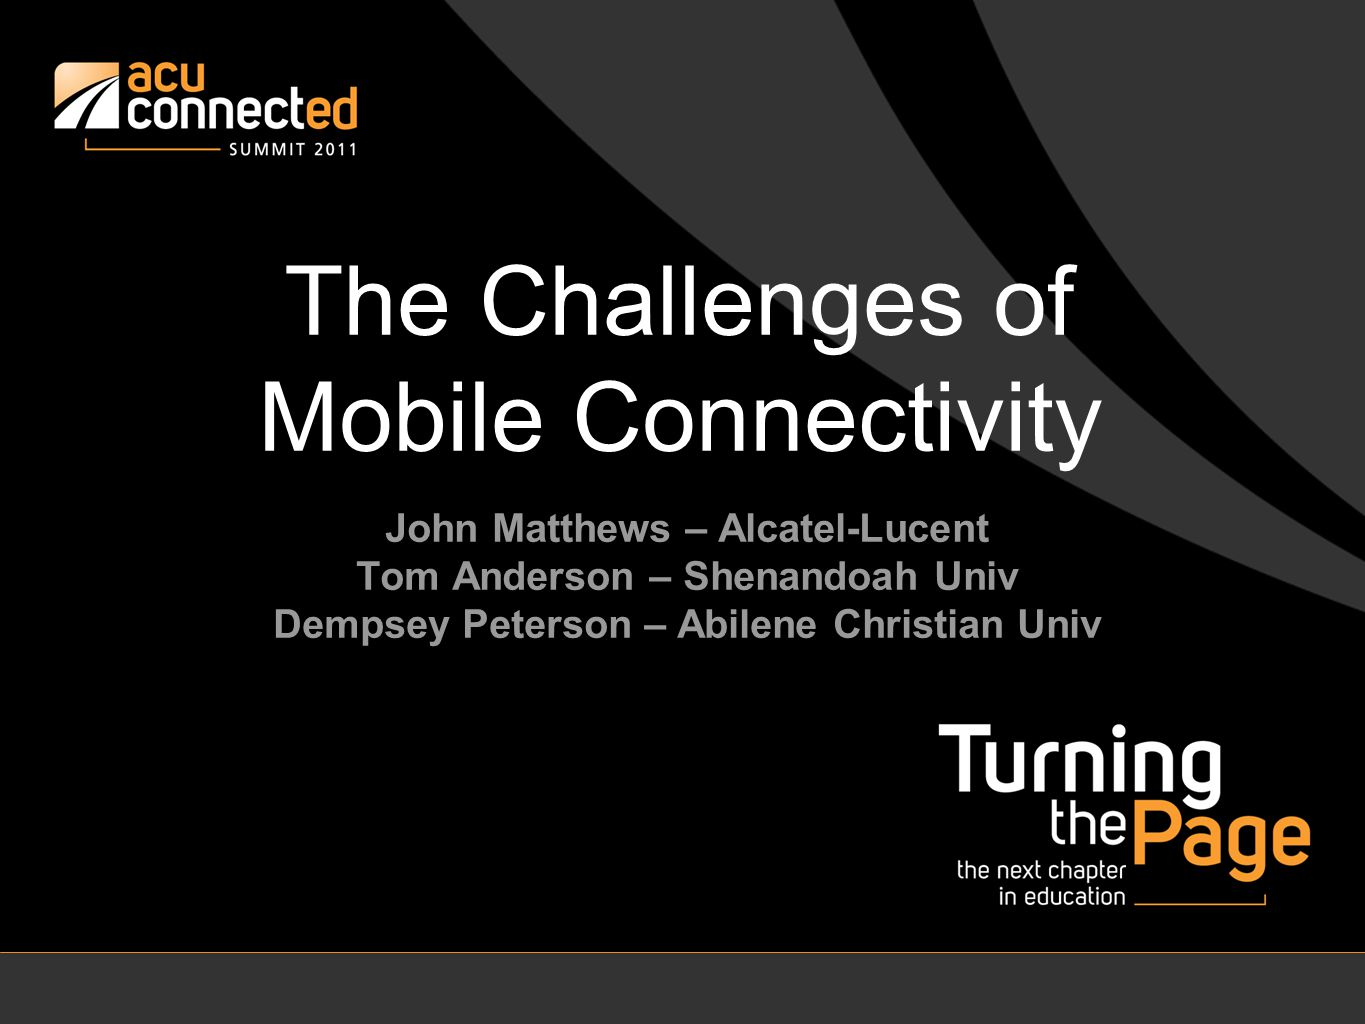 The Challenges of Mobile Connectivity John Matthews – Alcatel-Lucent Tom Anderson – Shenandoah Univ Dempsey Peterson – Abilene Christian Univ